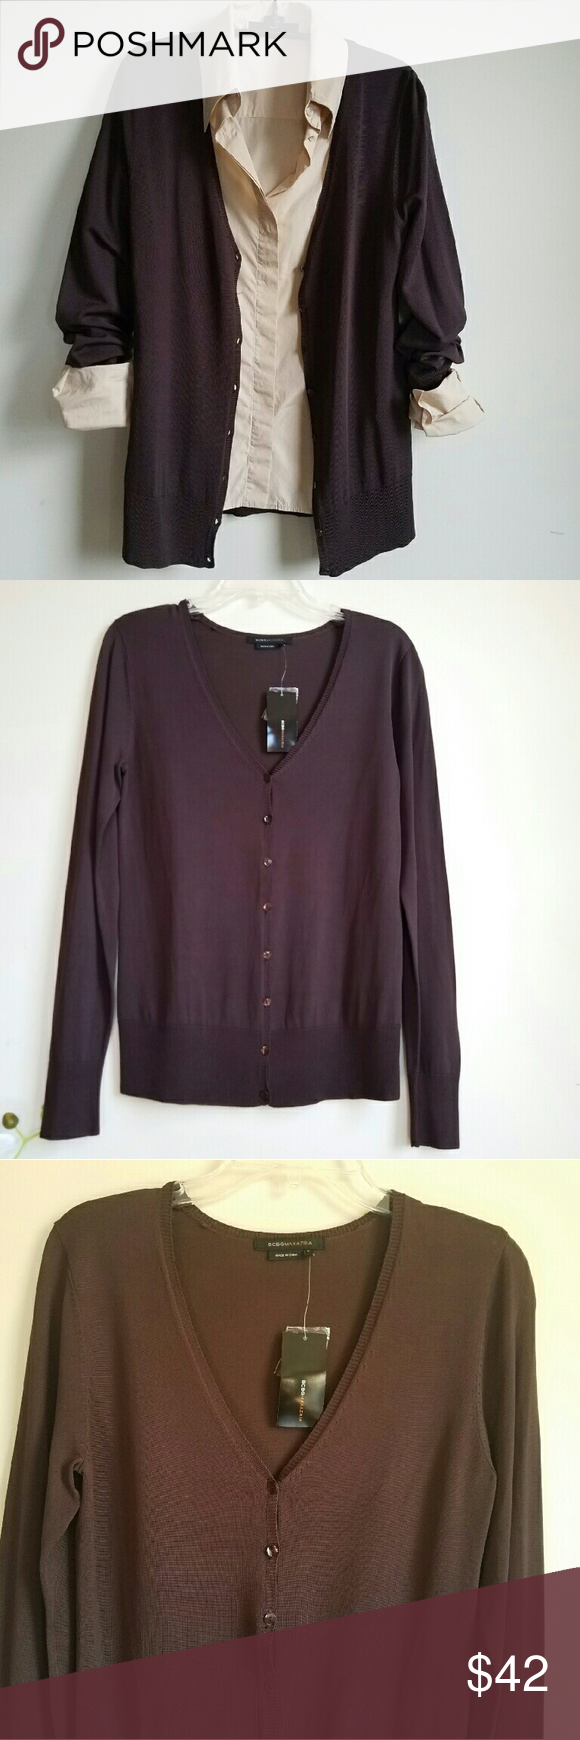 BCBG MaxAzria Chocolate Brown Boyfriend cardigan NWT | The long ...